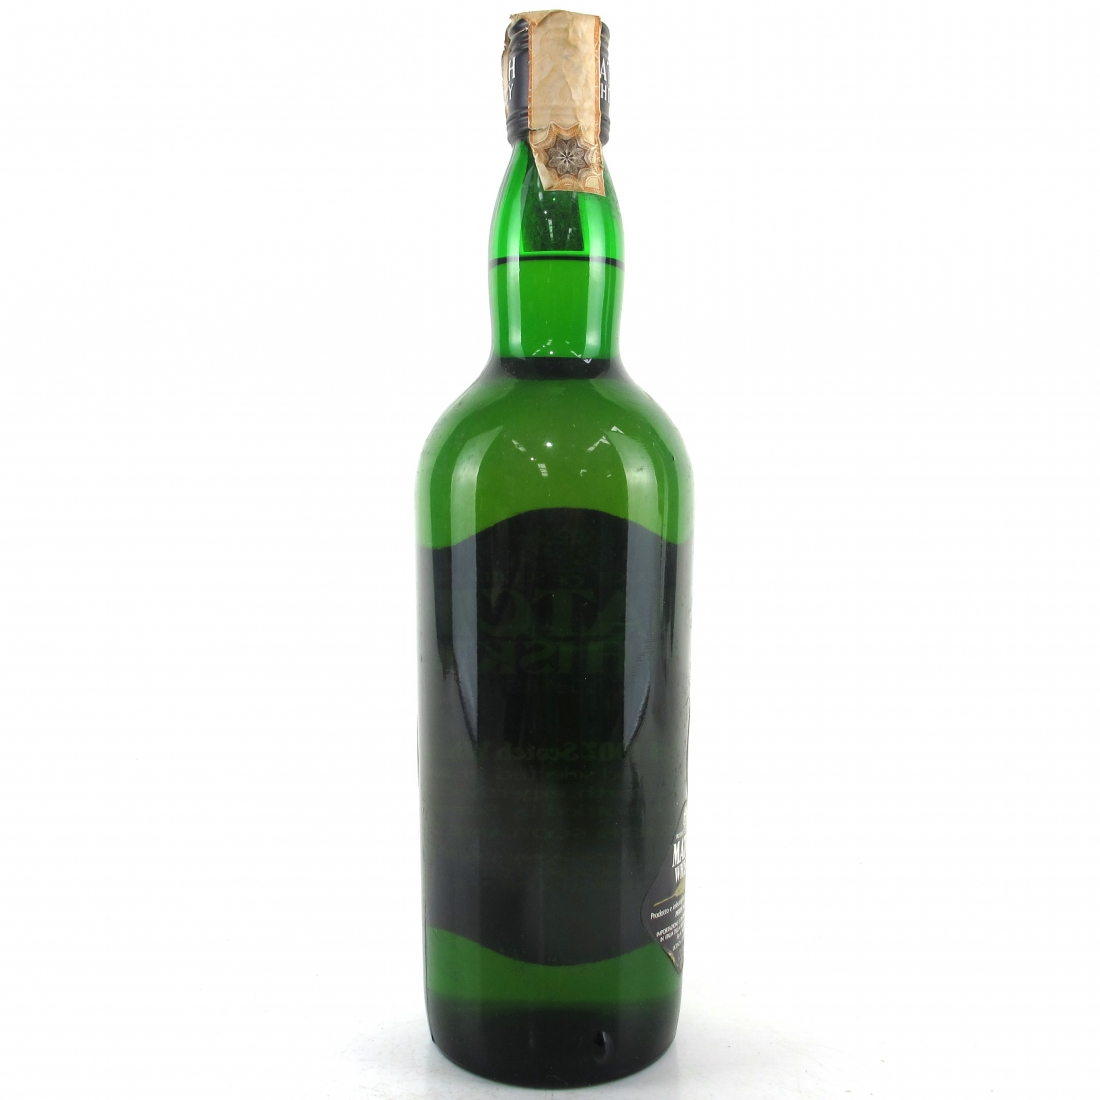 Match 8 Year Old Scotch Whisky 1970s / Branca Import